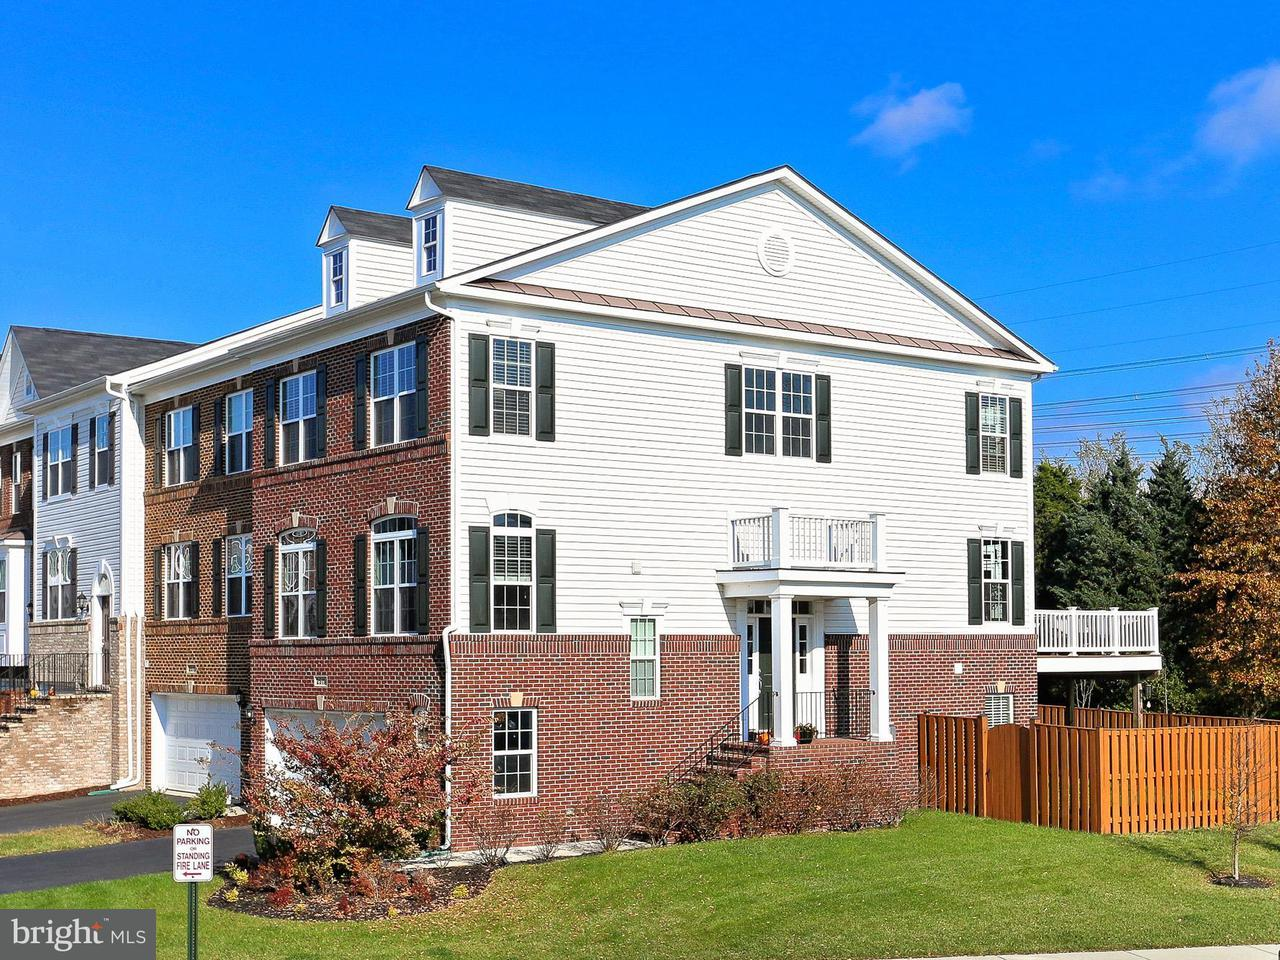 Townhouse for Sale at 25114 Letchworth Ter 25114 Letchworth Ter Aldie, Virginia 20105 United States